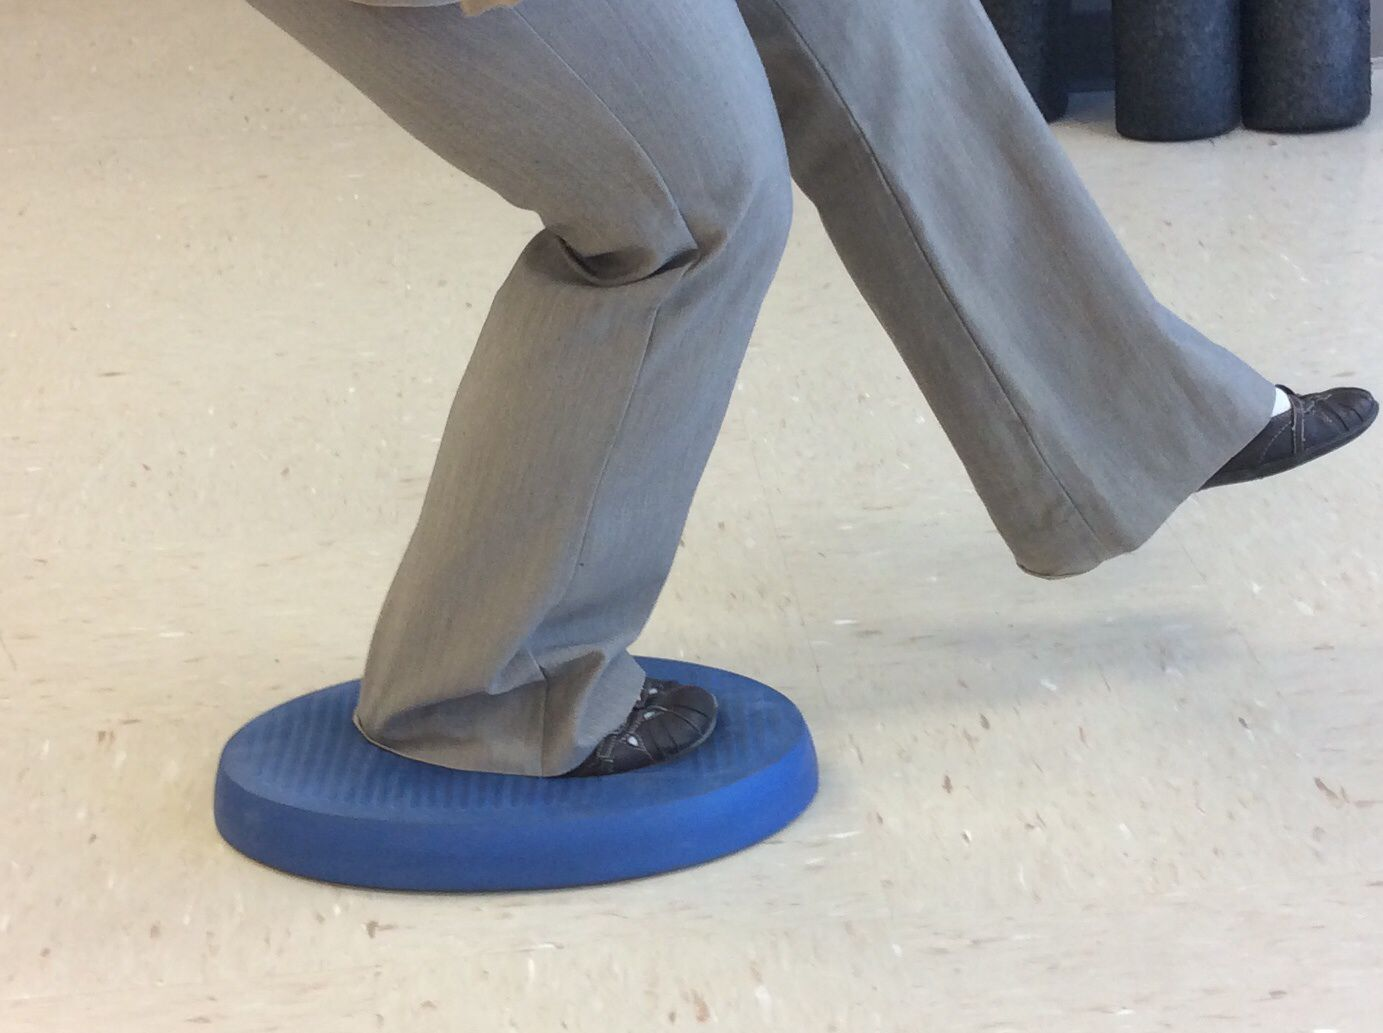 Image of balance exercises on therapy foam.